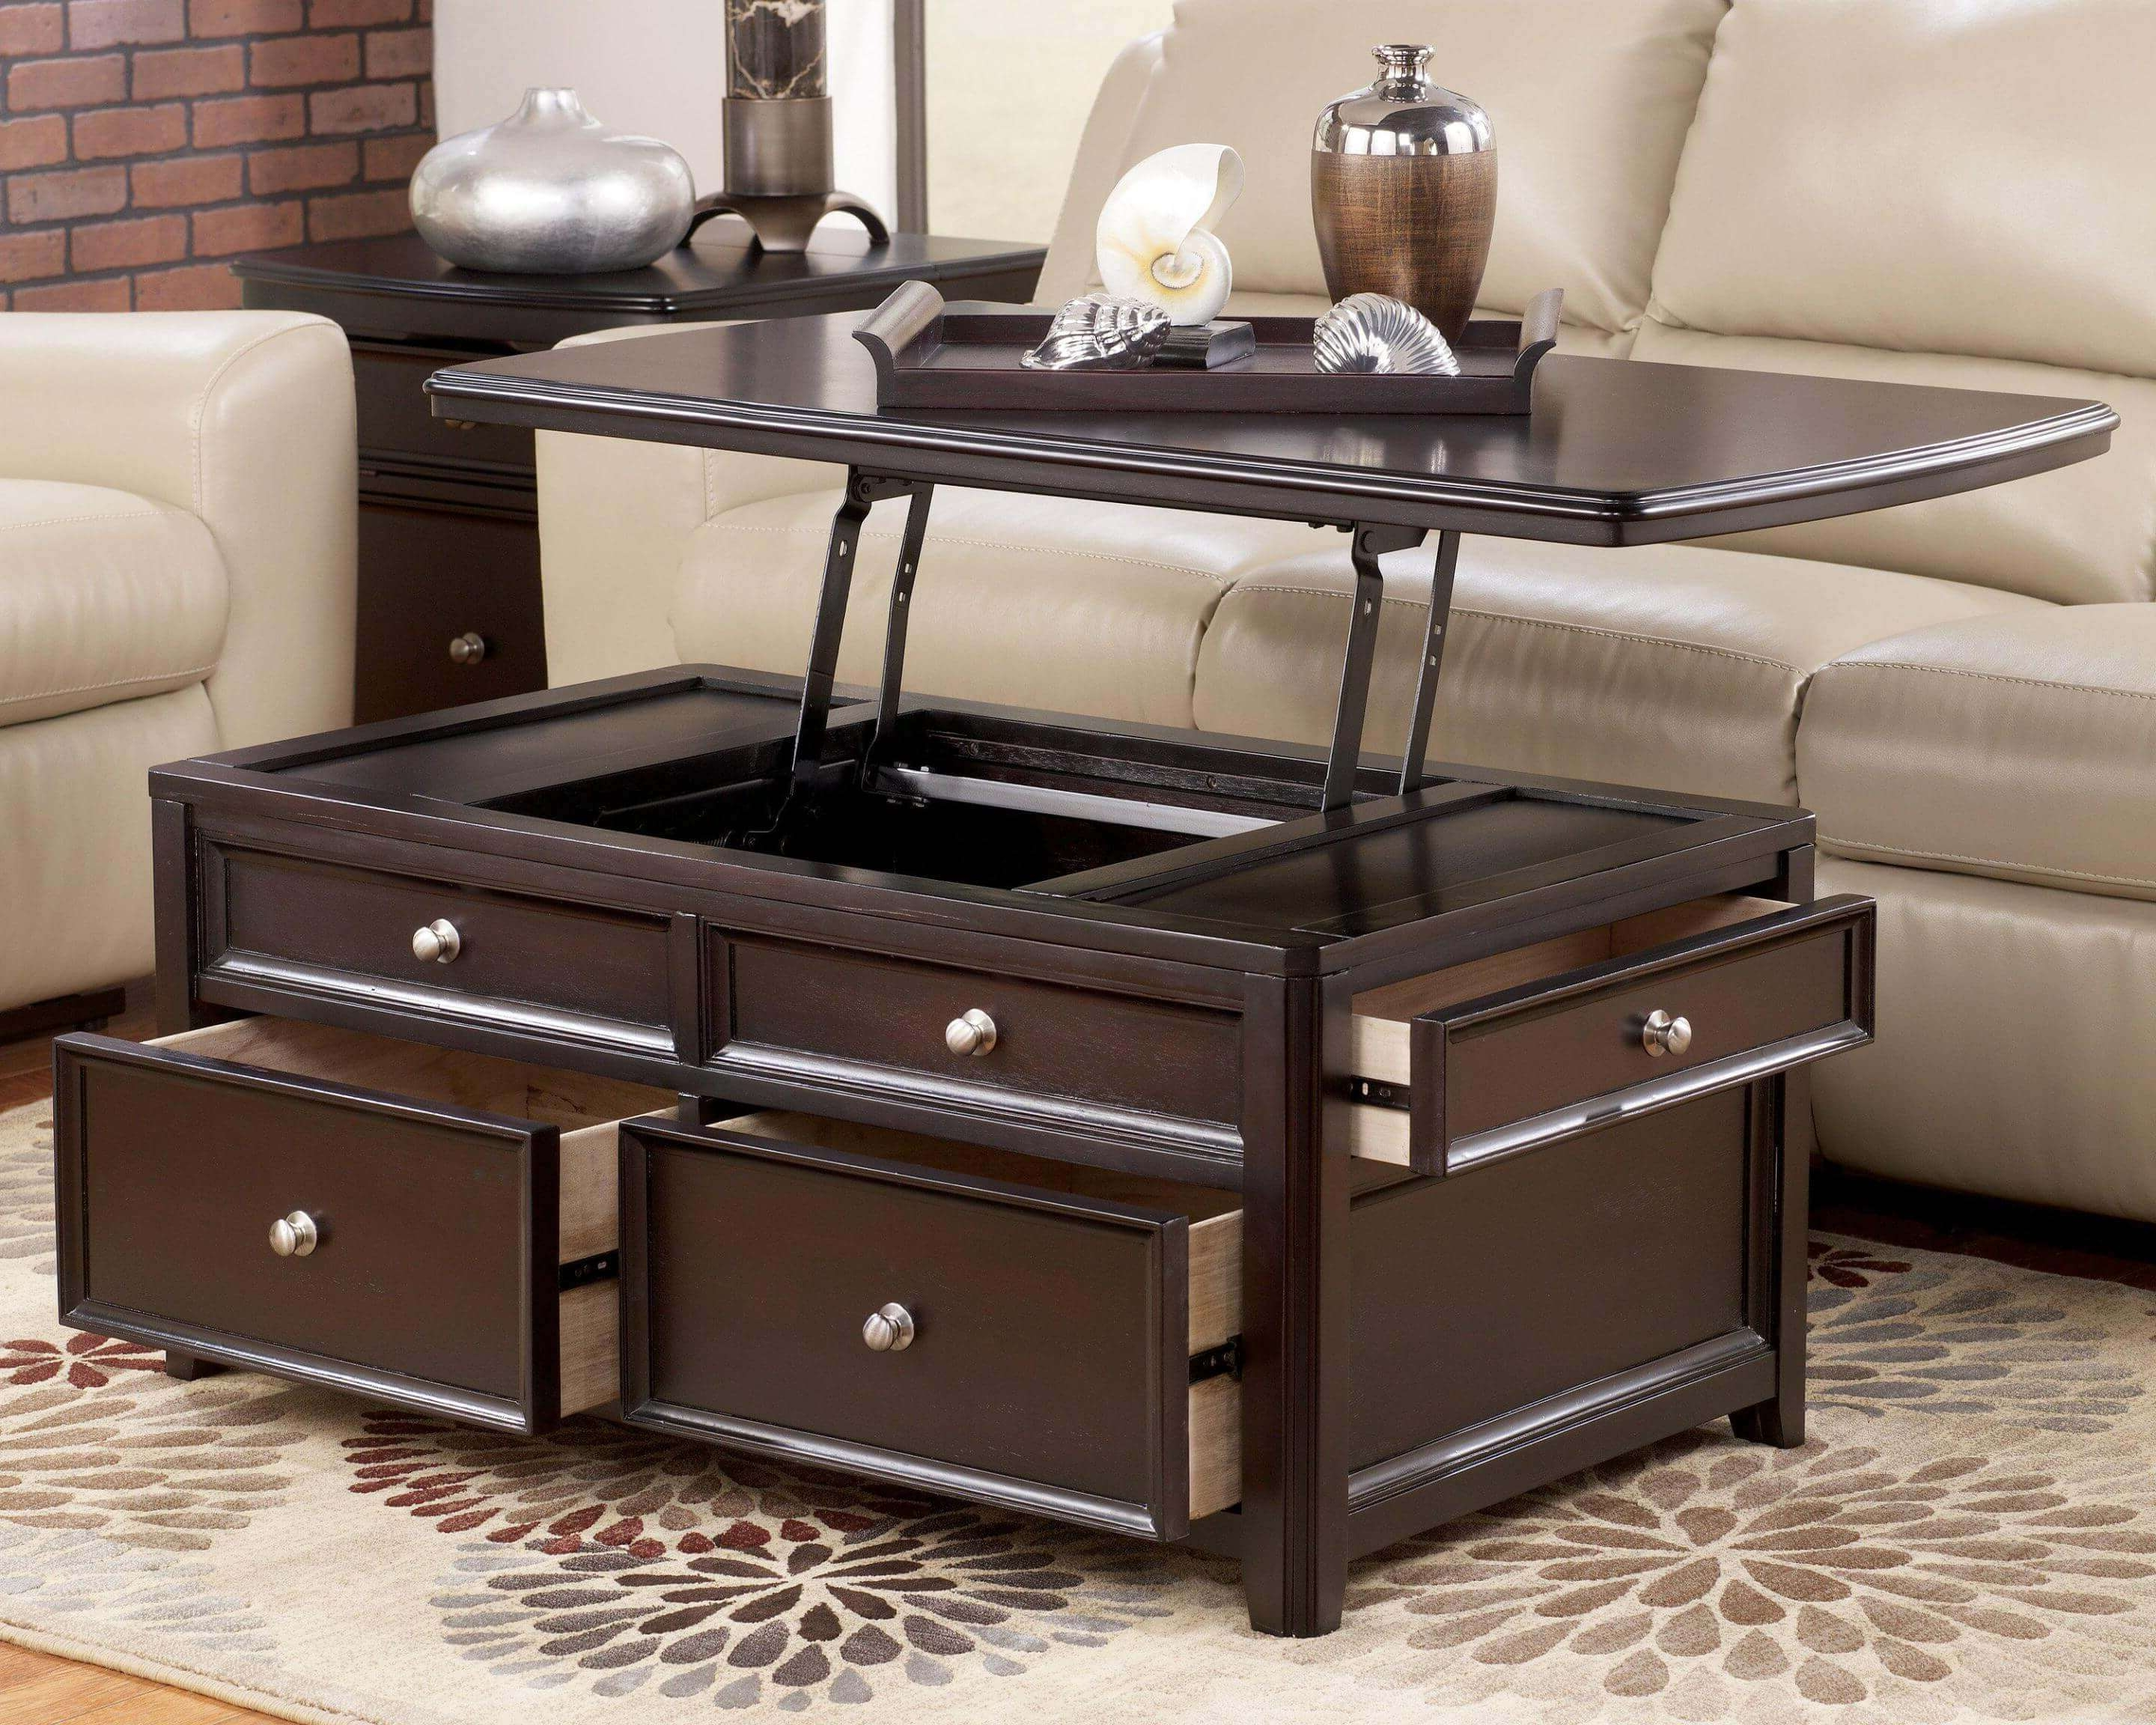 Most Current Coffee Tables With Lift Top And Storage For Coffee Tables : Lift Top Coffee Table With Storage Flip — Office (View 13 of 20)